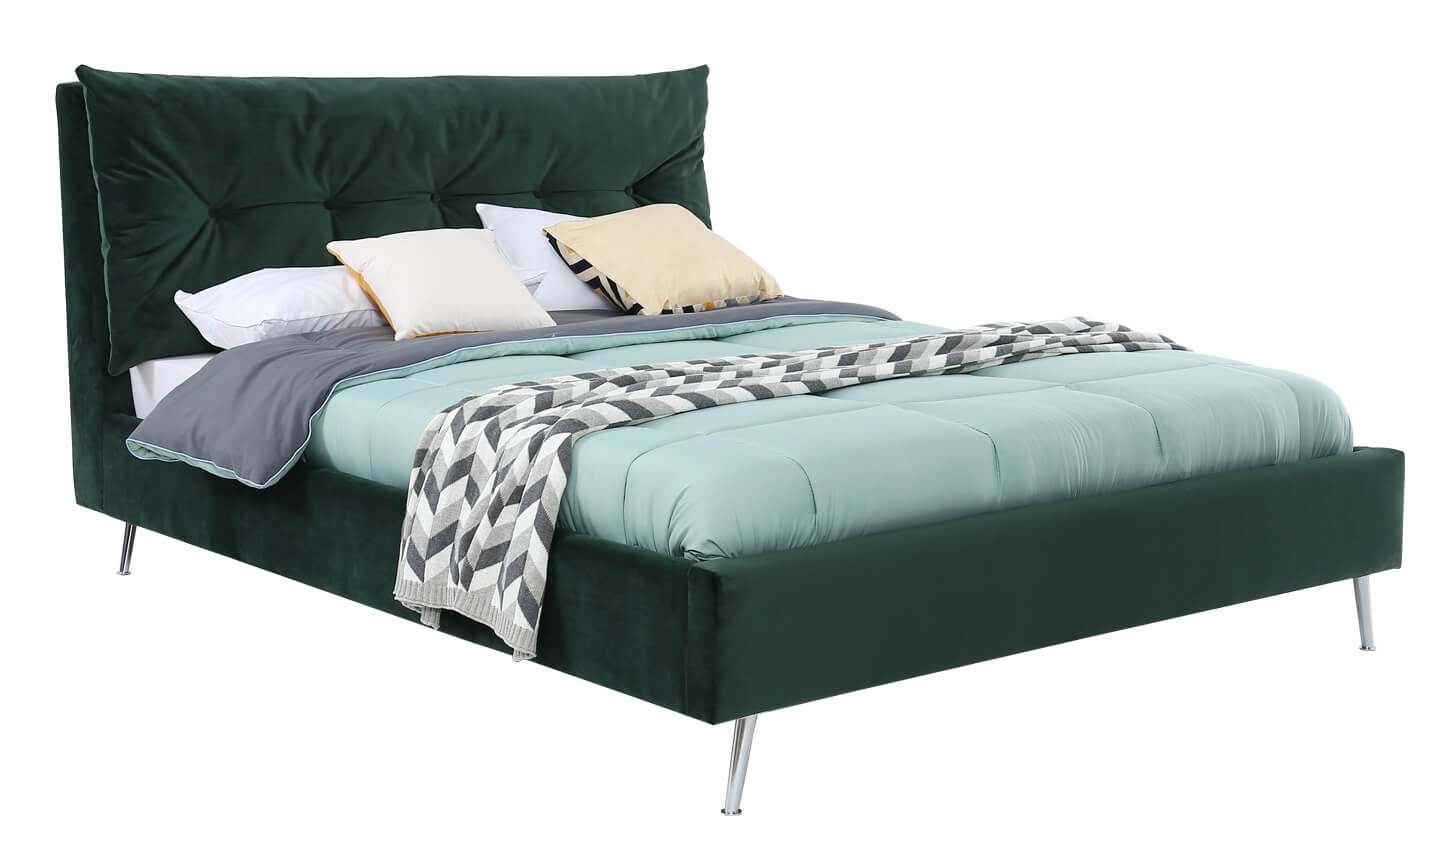 Avery 5' Bed Grey